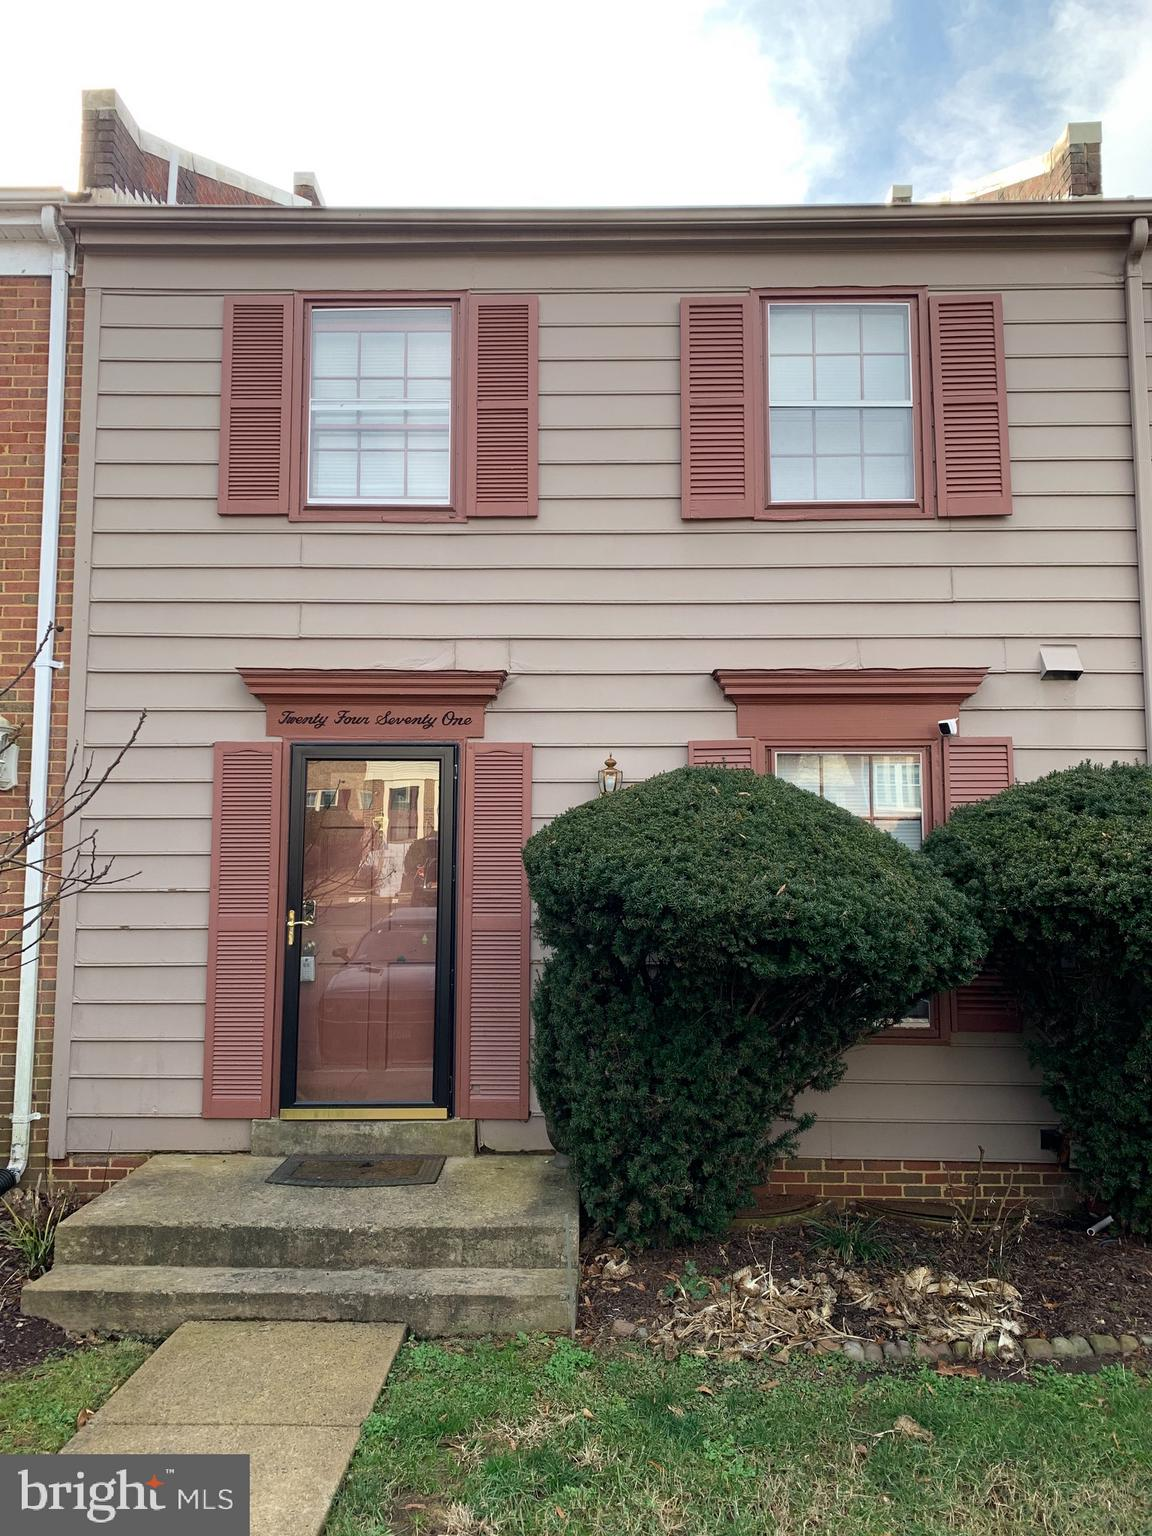 3 bedroom 2.5 bath interior townhome in coveted Mt. Vernon Square.  Home being sold AS IS.  Basement fully finished, HVAC & Water heater 2 years old. Needs some love, good bones, excellent location convenient to 495, Reagan,  DC 20 min from DC and Arlington, 15 Min to Fort Belvoir.